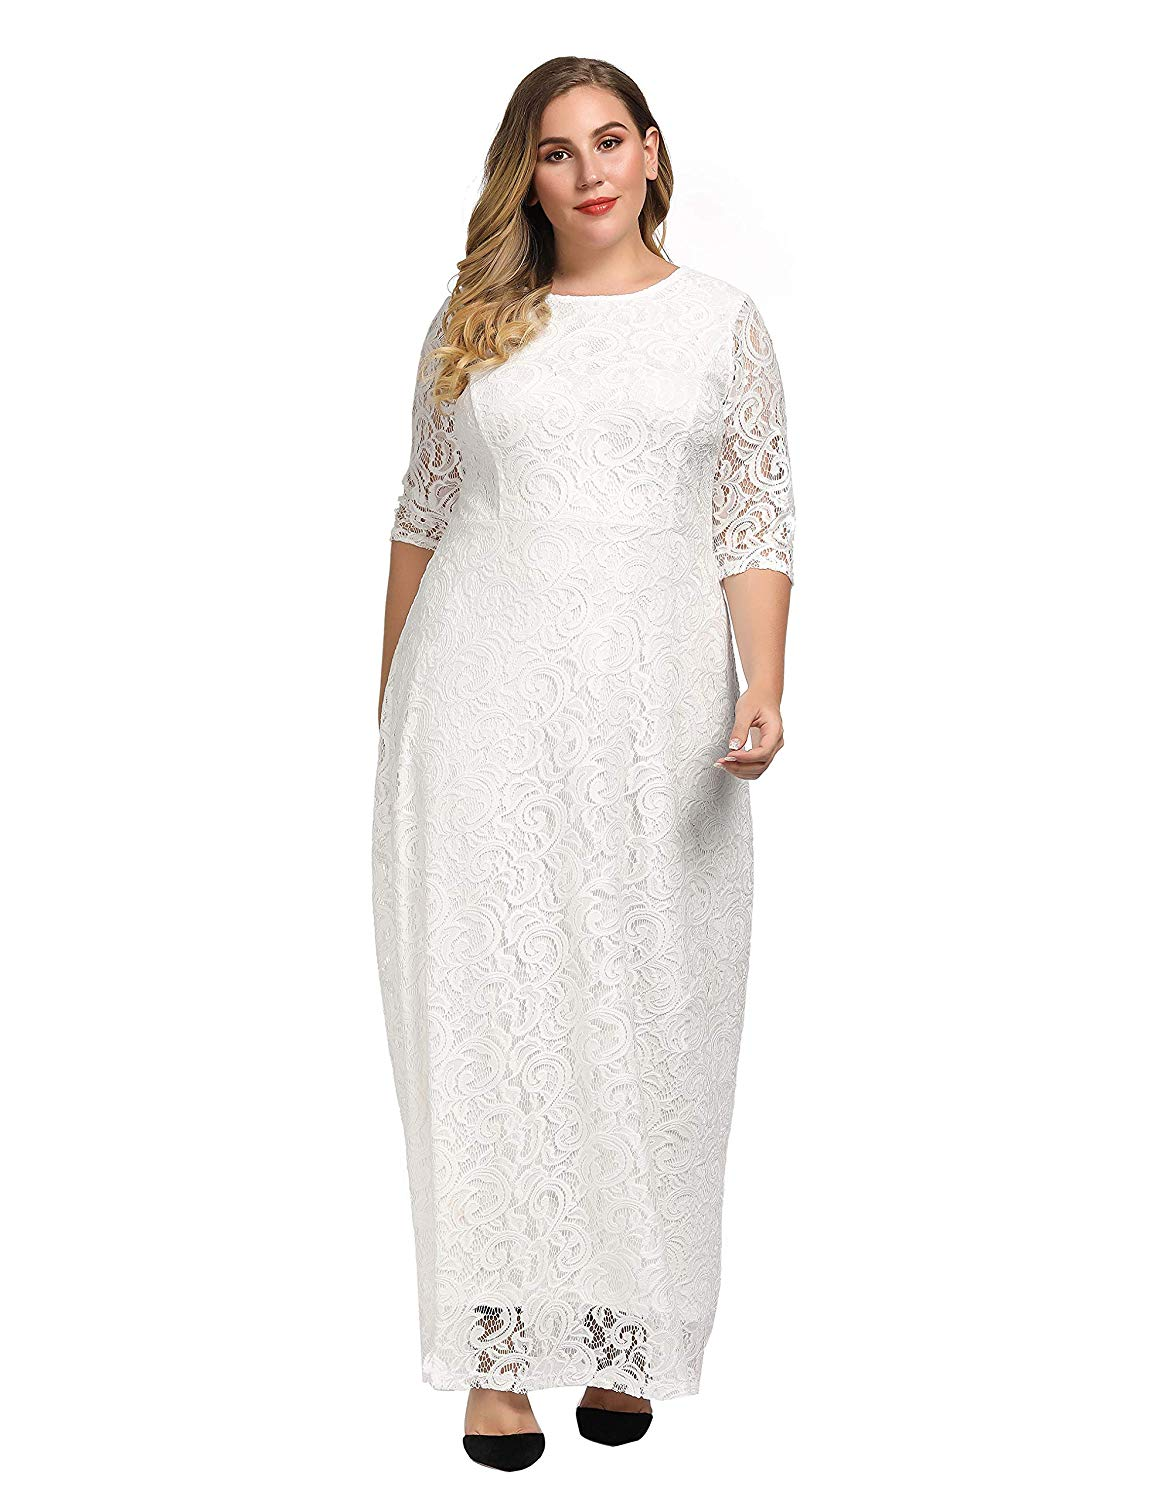 Details about Chicwe Women\'s Plus Size Stretch Lace Maxi Dress -, White  Ivory, Size 4.0